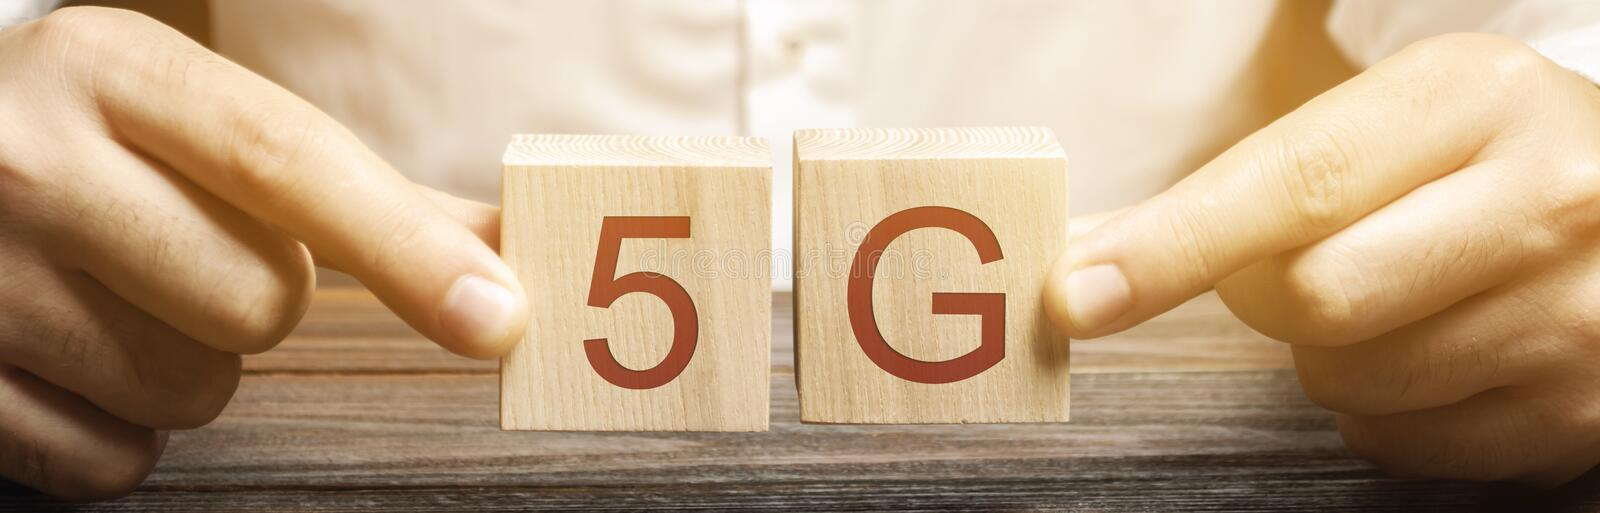 A man holds wooden blocks with the word 5G. High-speed mobile Internet. New generation networks. Fifth generation cellular network. Technology stock photo